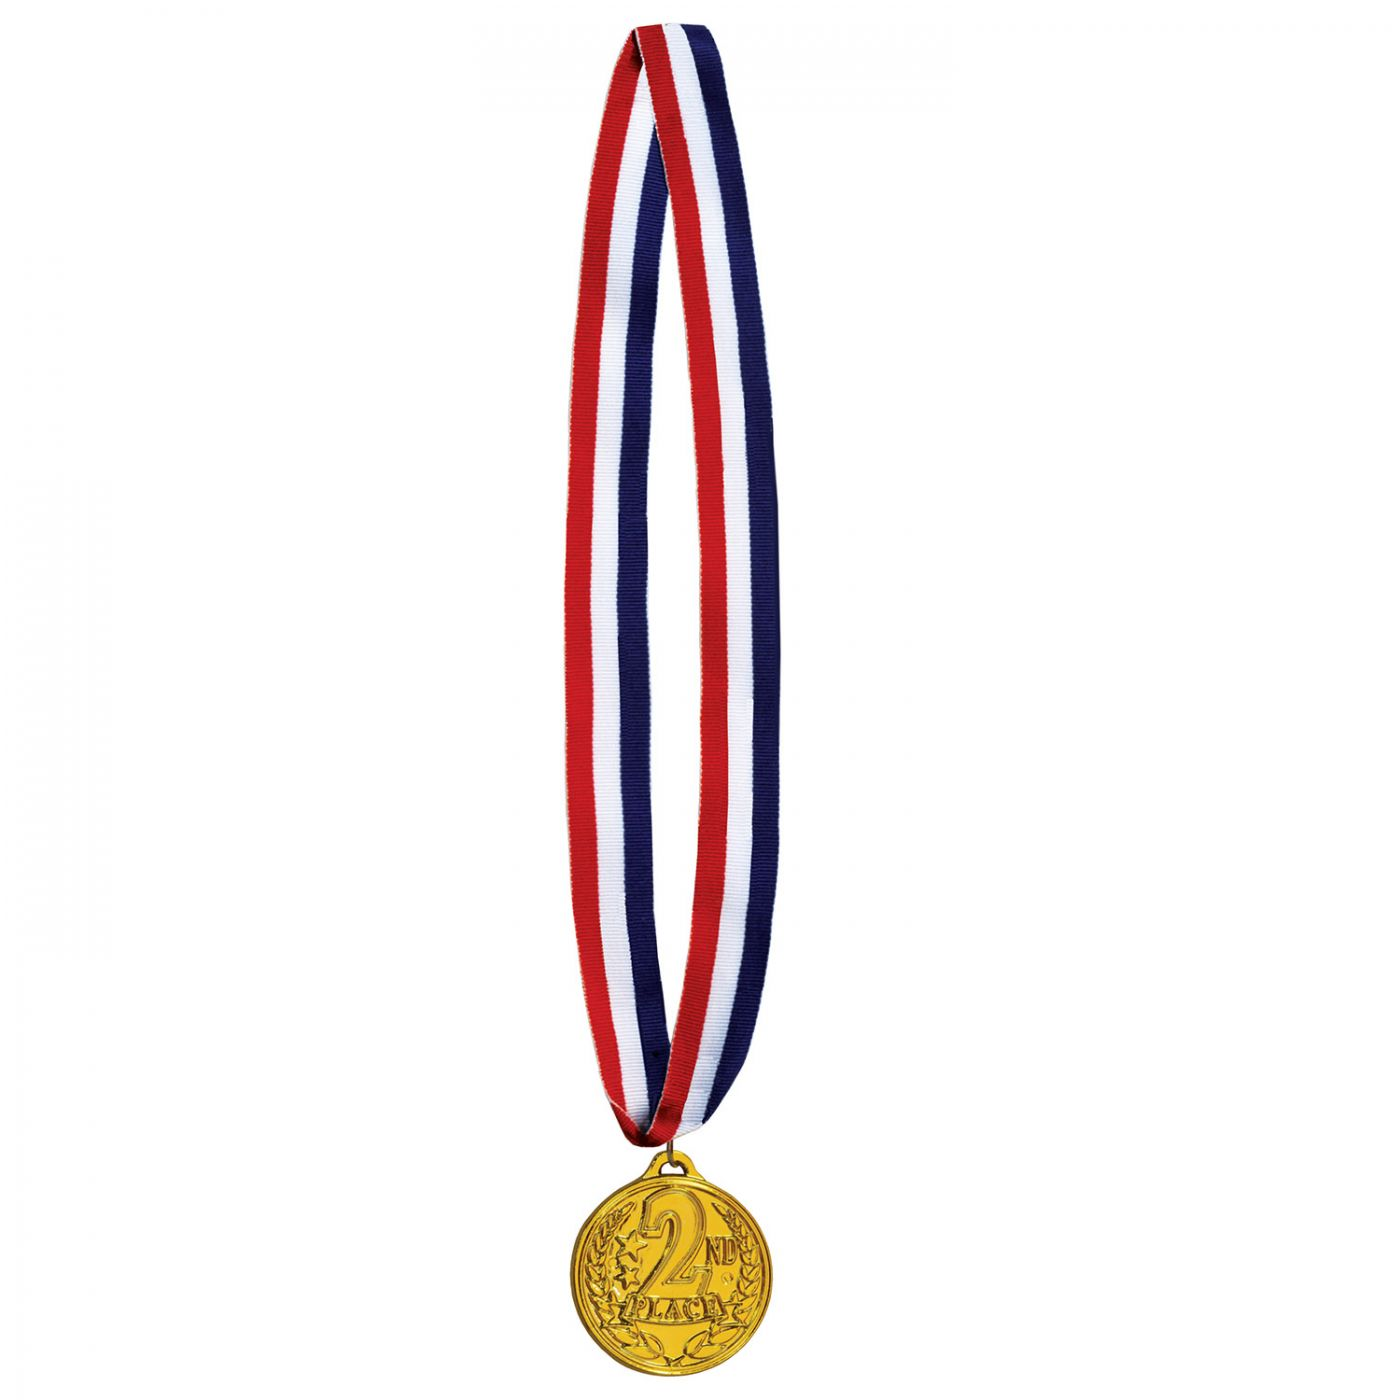 2nd Place Medal w/Ribbon image